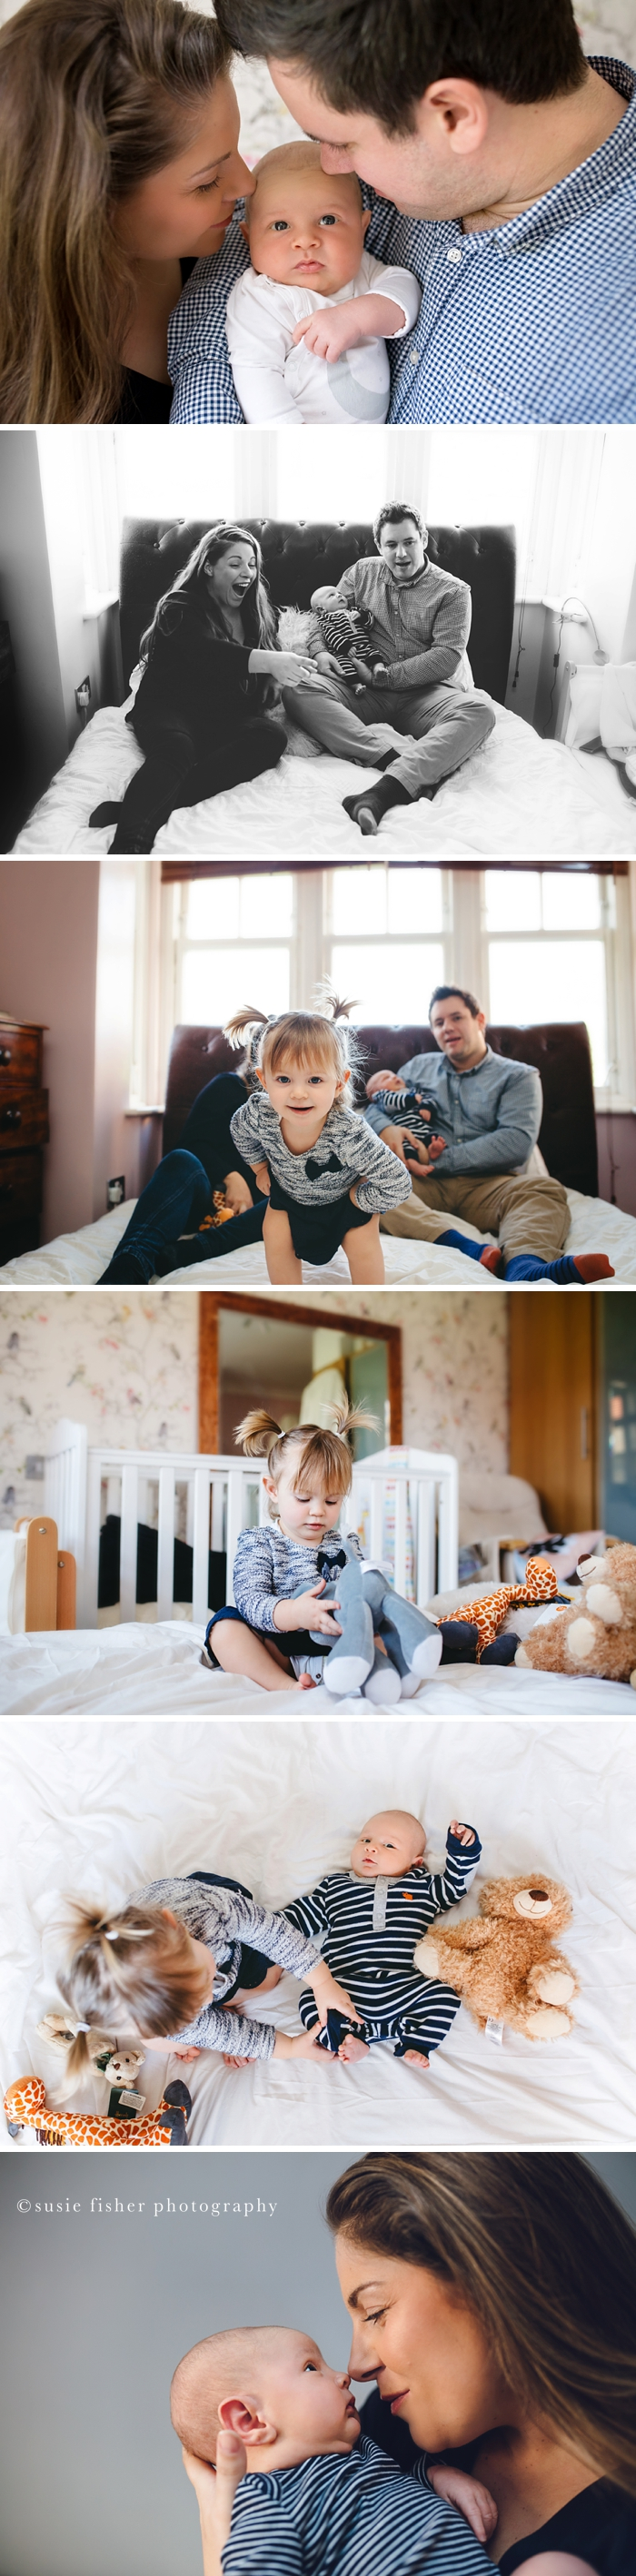 At Home Lifestyle Newborn Family Photography Session in Guildford Surrey_Image Copyrighted Susie Fisher Photography 2017